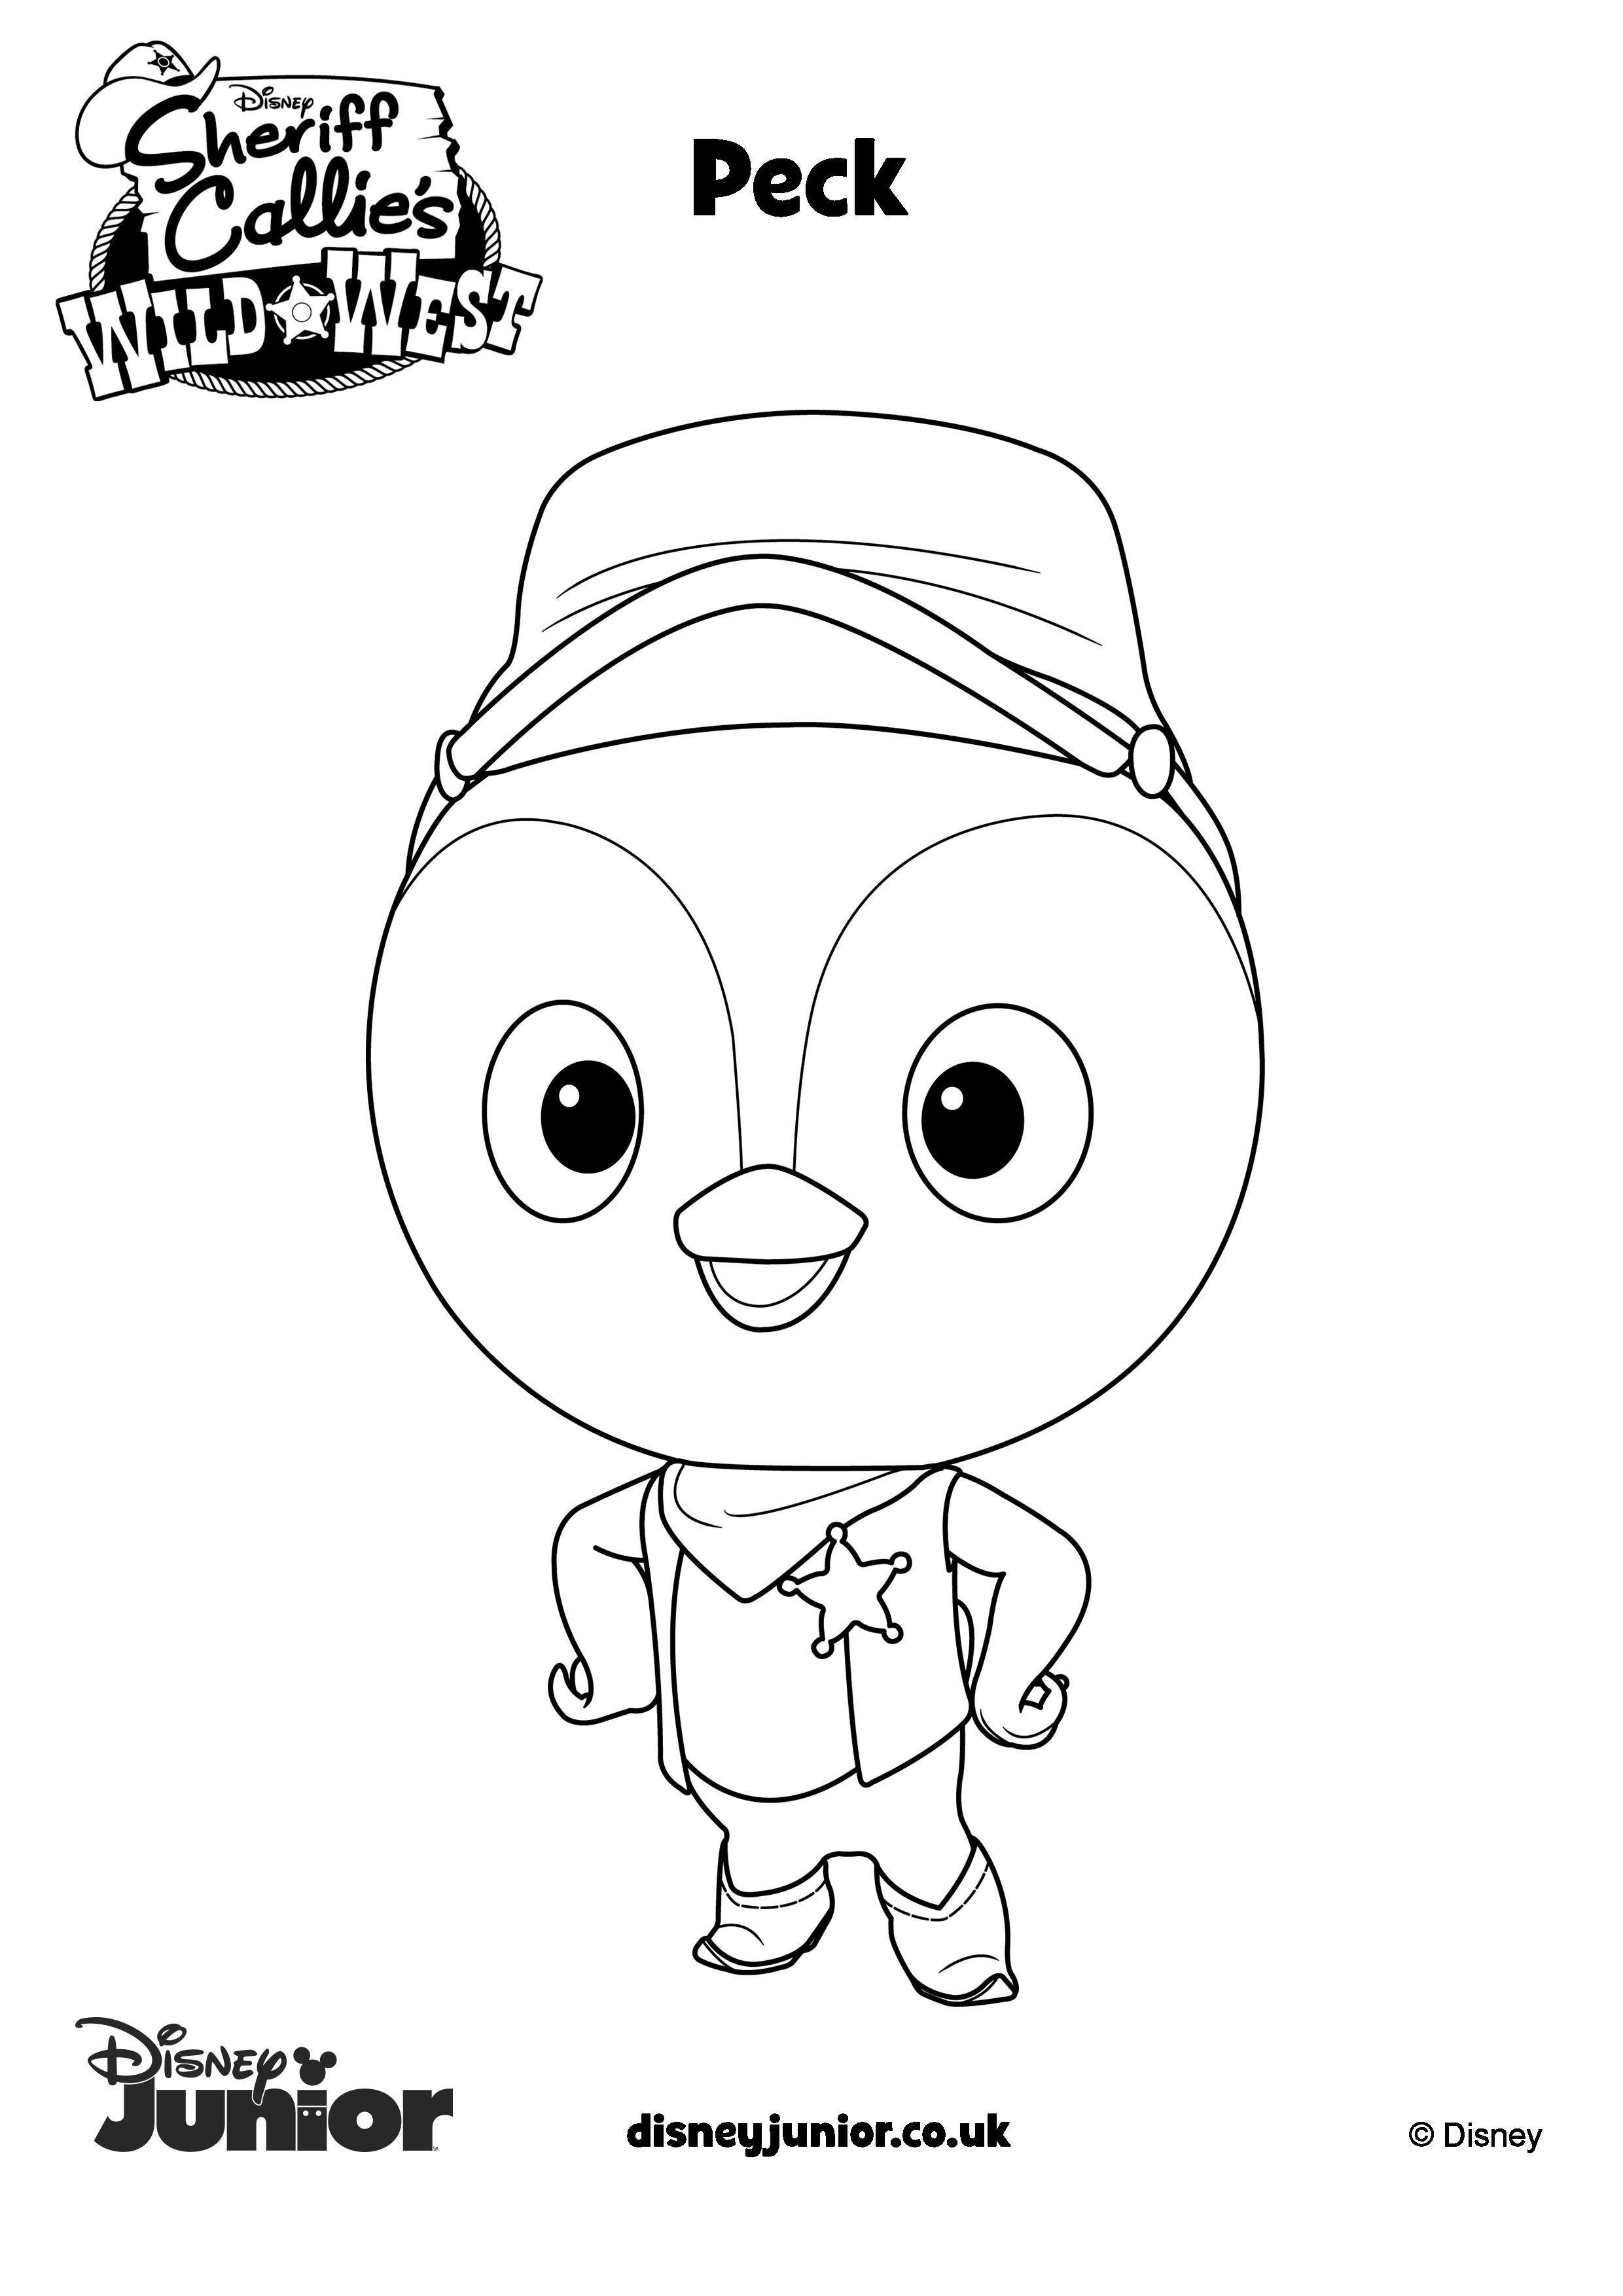 Sheriff Callie Coloring Pages 4 Sheriff Callie Sheriff Callie